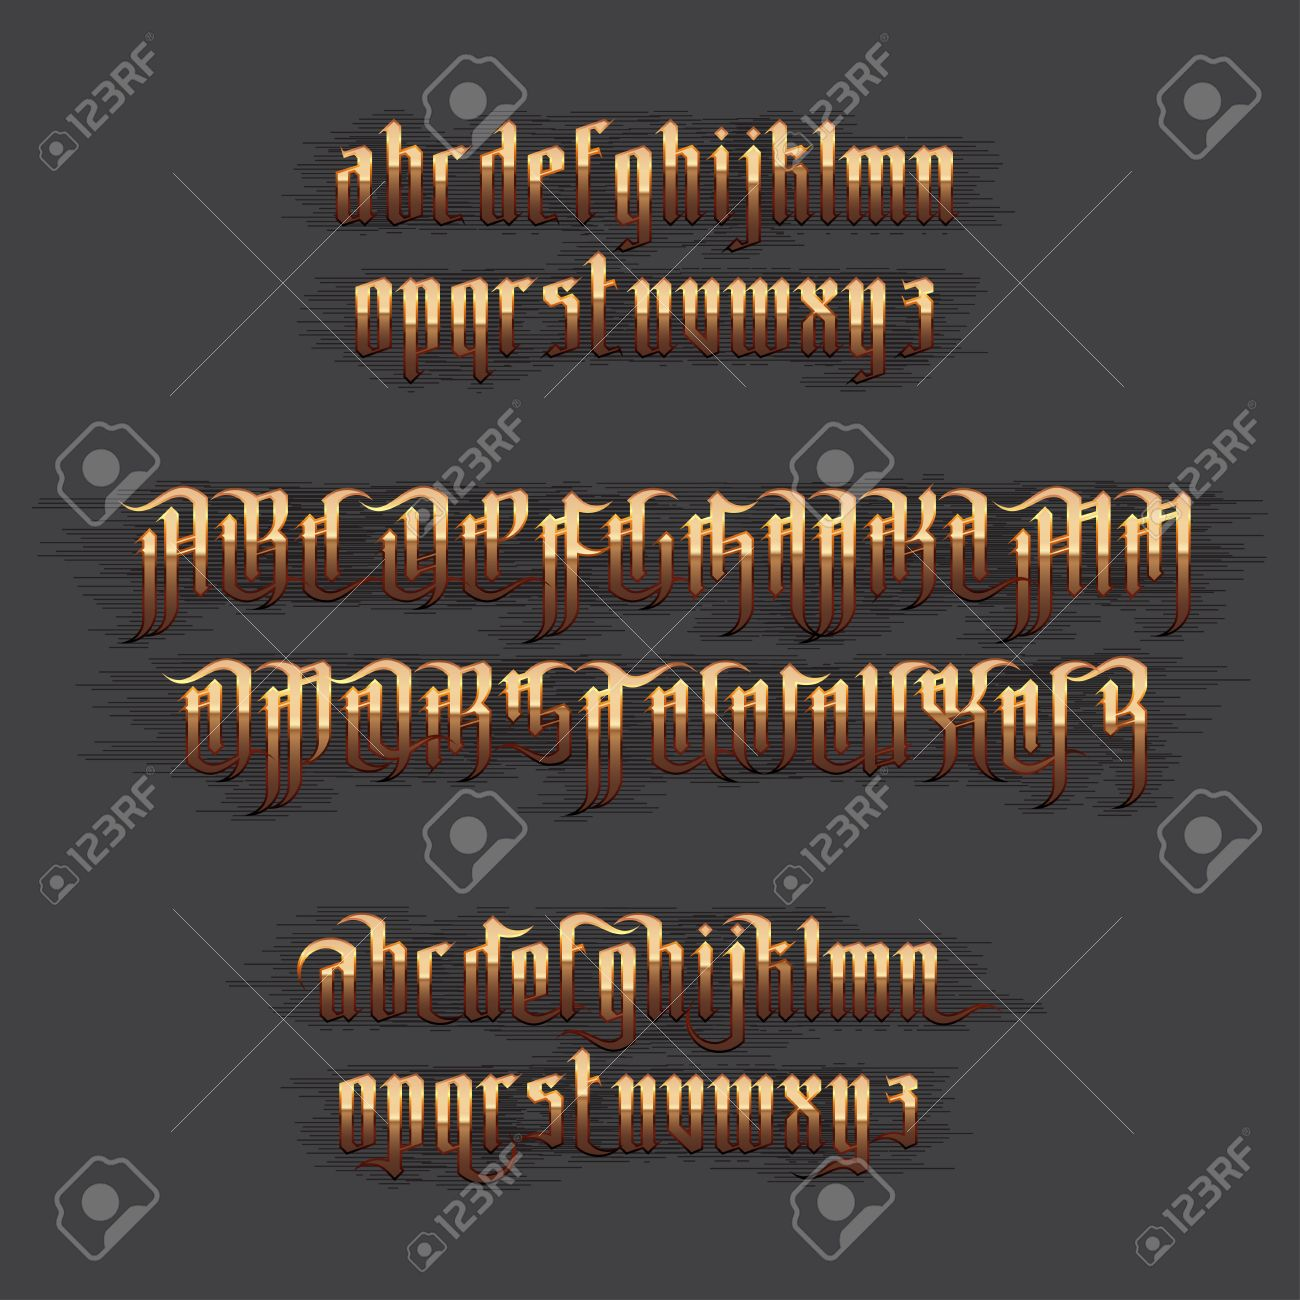 Modern Gothic Style Font Gold Letters With Decoration Elements Stock Vector